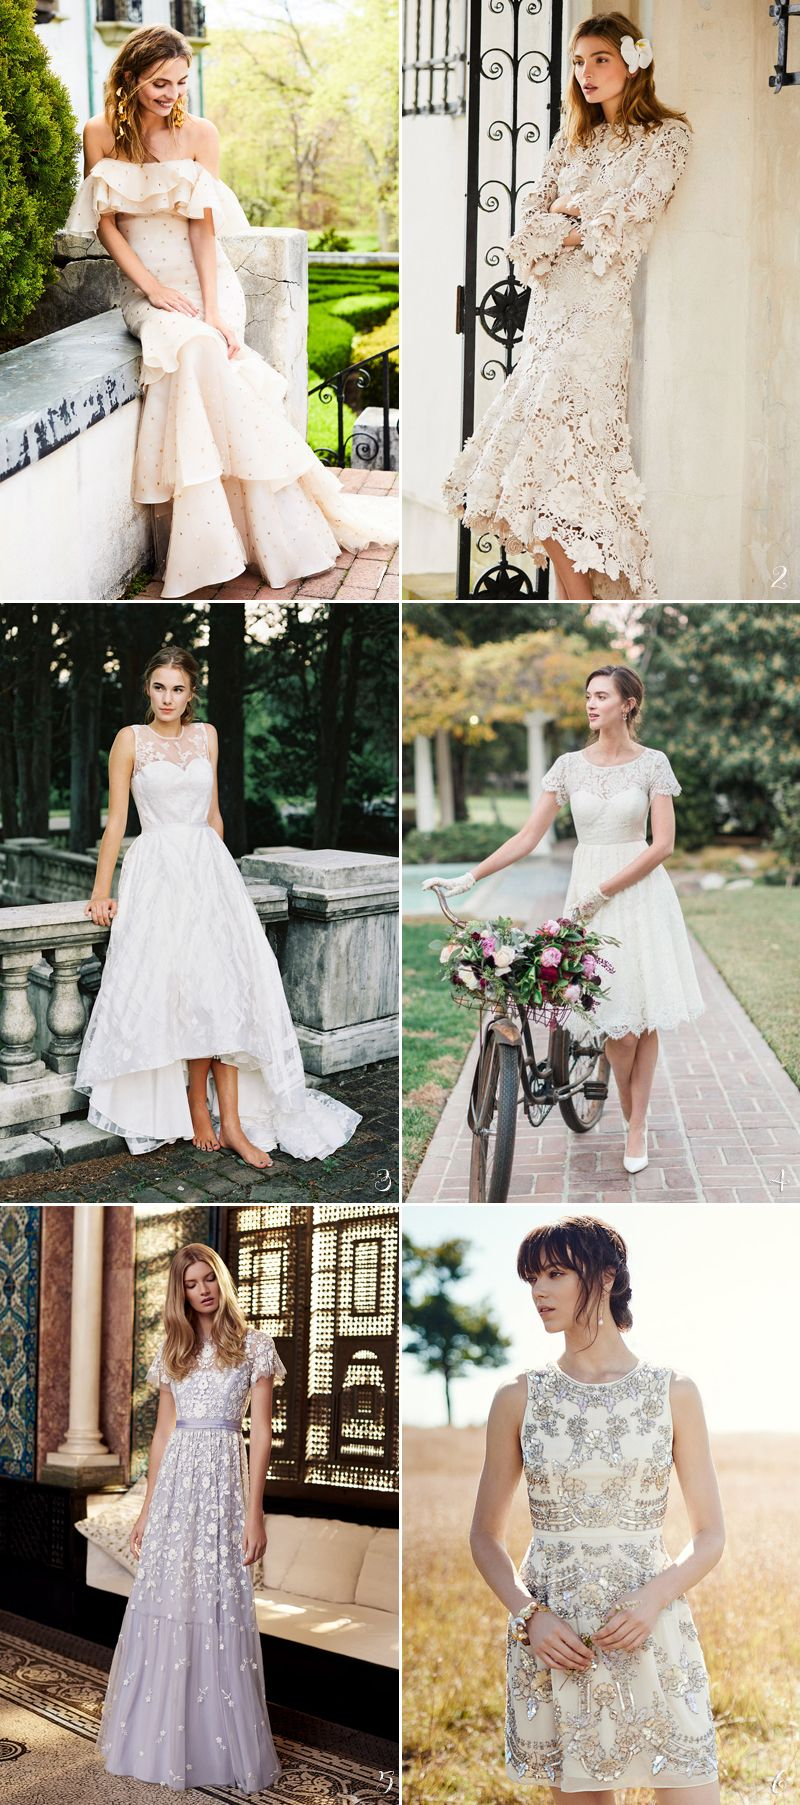 30 Perfect Gowns For Every Type Of Outdoor Wedding This Summer Praise Wedding Summer Wedding Gowns Backyard Wedding Dresses Summer Wedding Outdoor [ 1805 x 800 Pixel ]